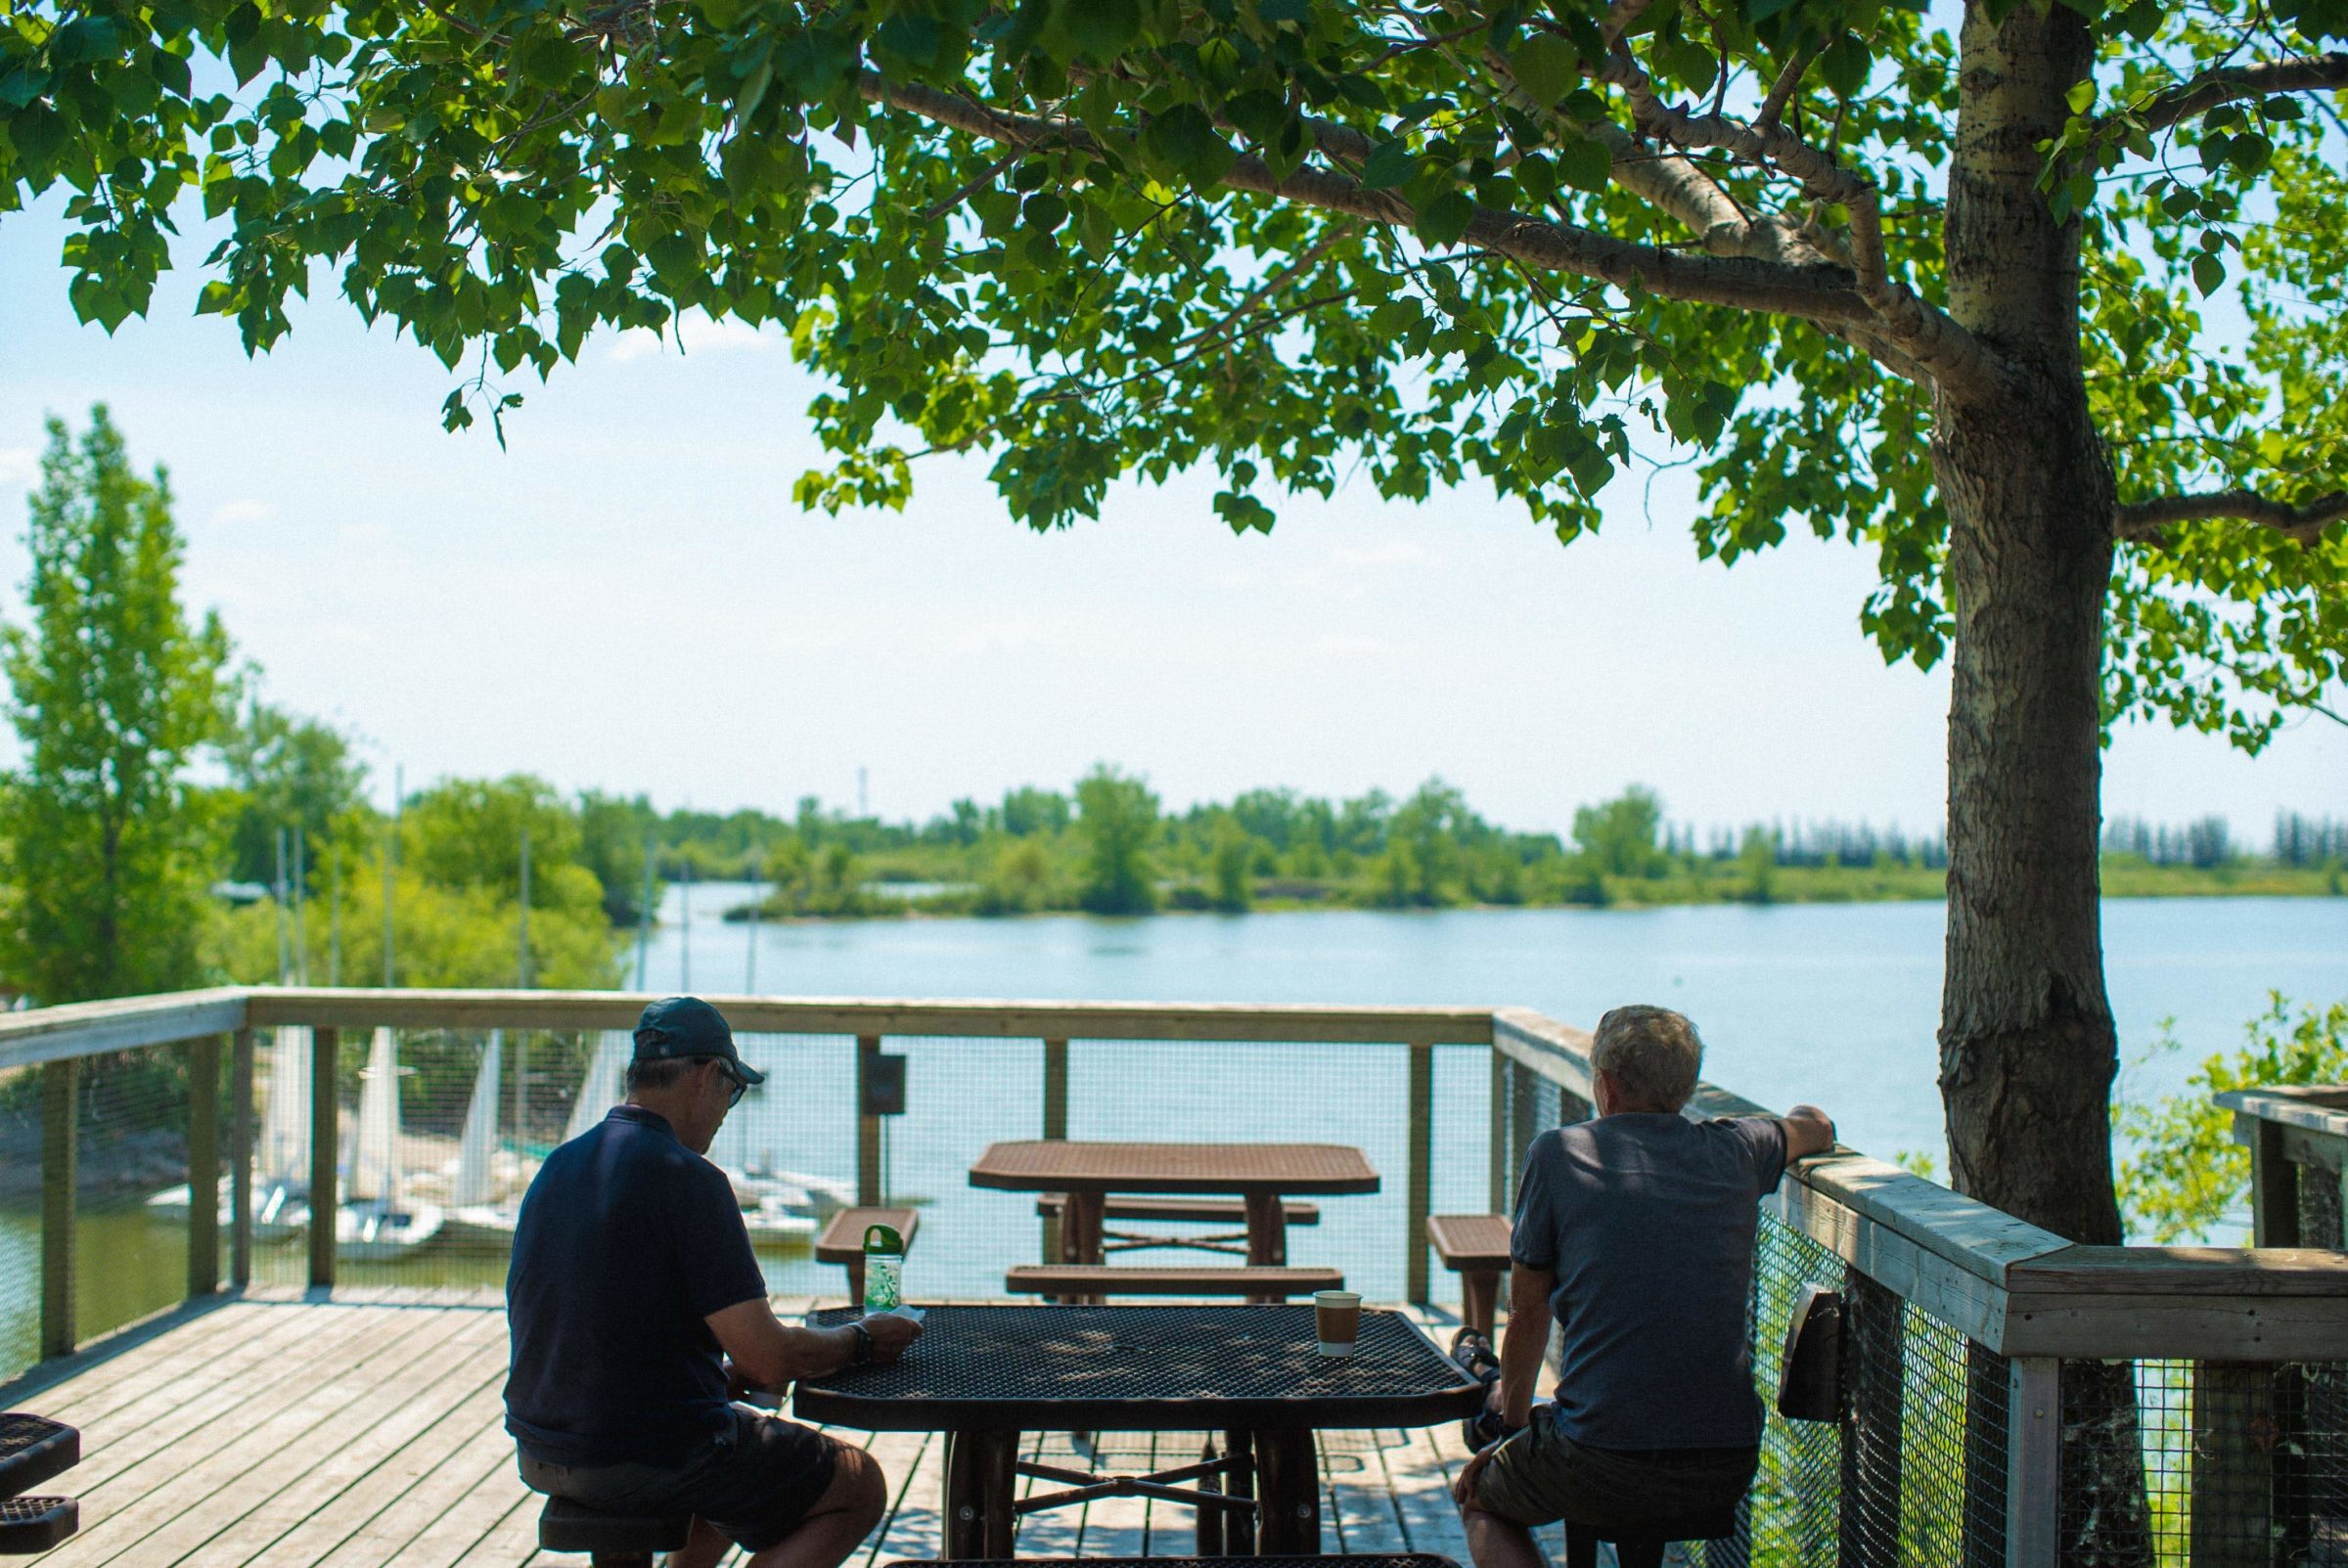 Two visitors take in the patio view at The Buffalo Stone Cafe.